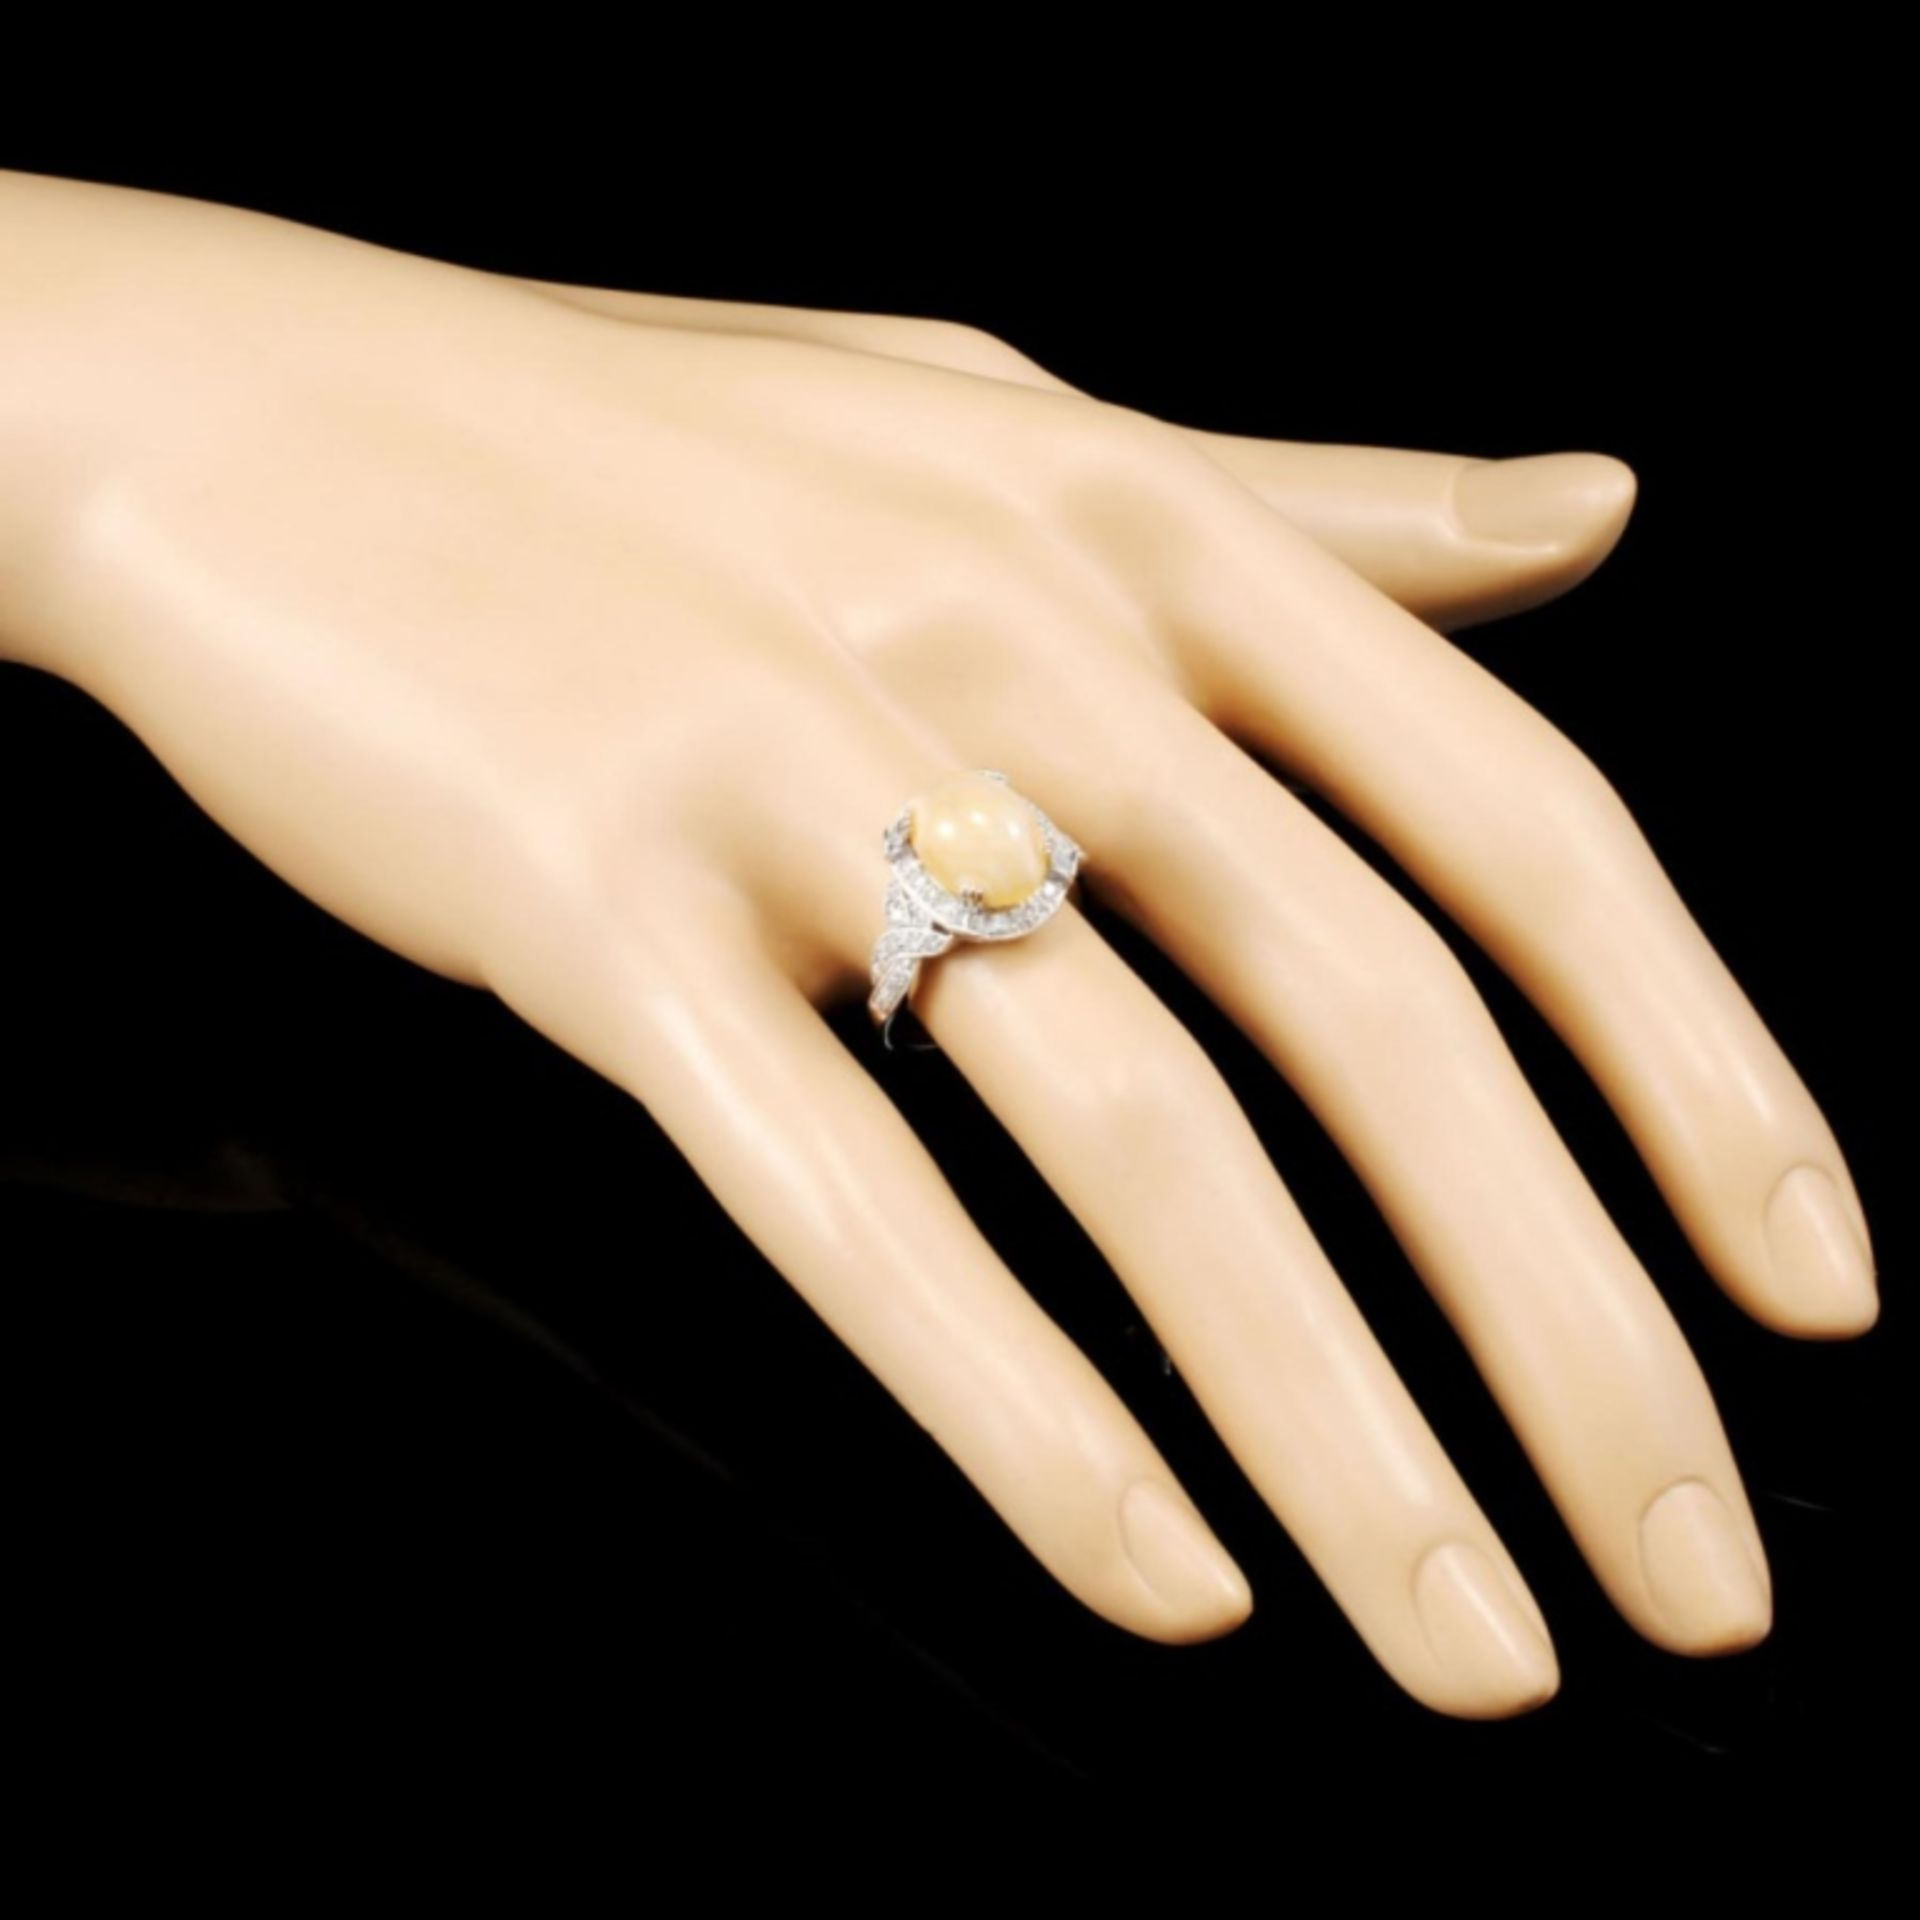 18K Gold 2.14ct Opal & 0.48ctw Diamond Ring - Image 3 of 5